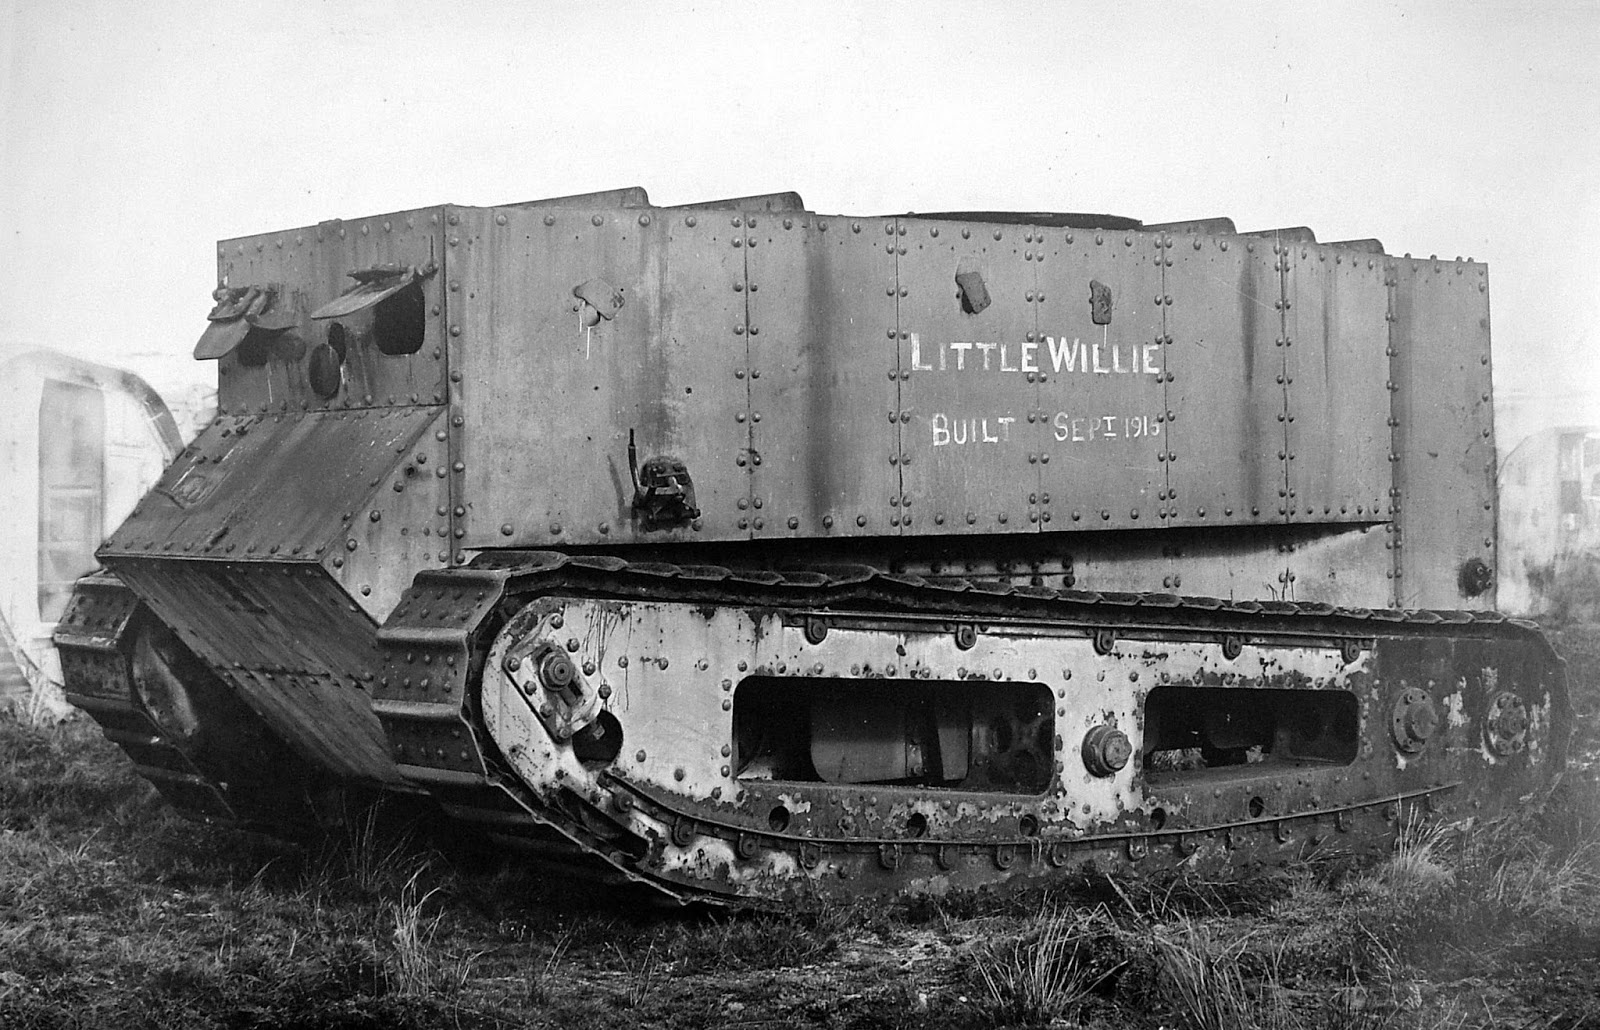 The first tanks of the First World War. Breakthrough in the technical equipment of the armies 40